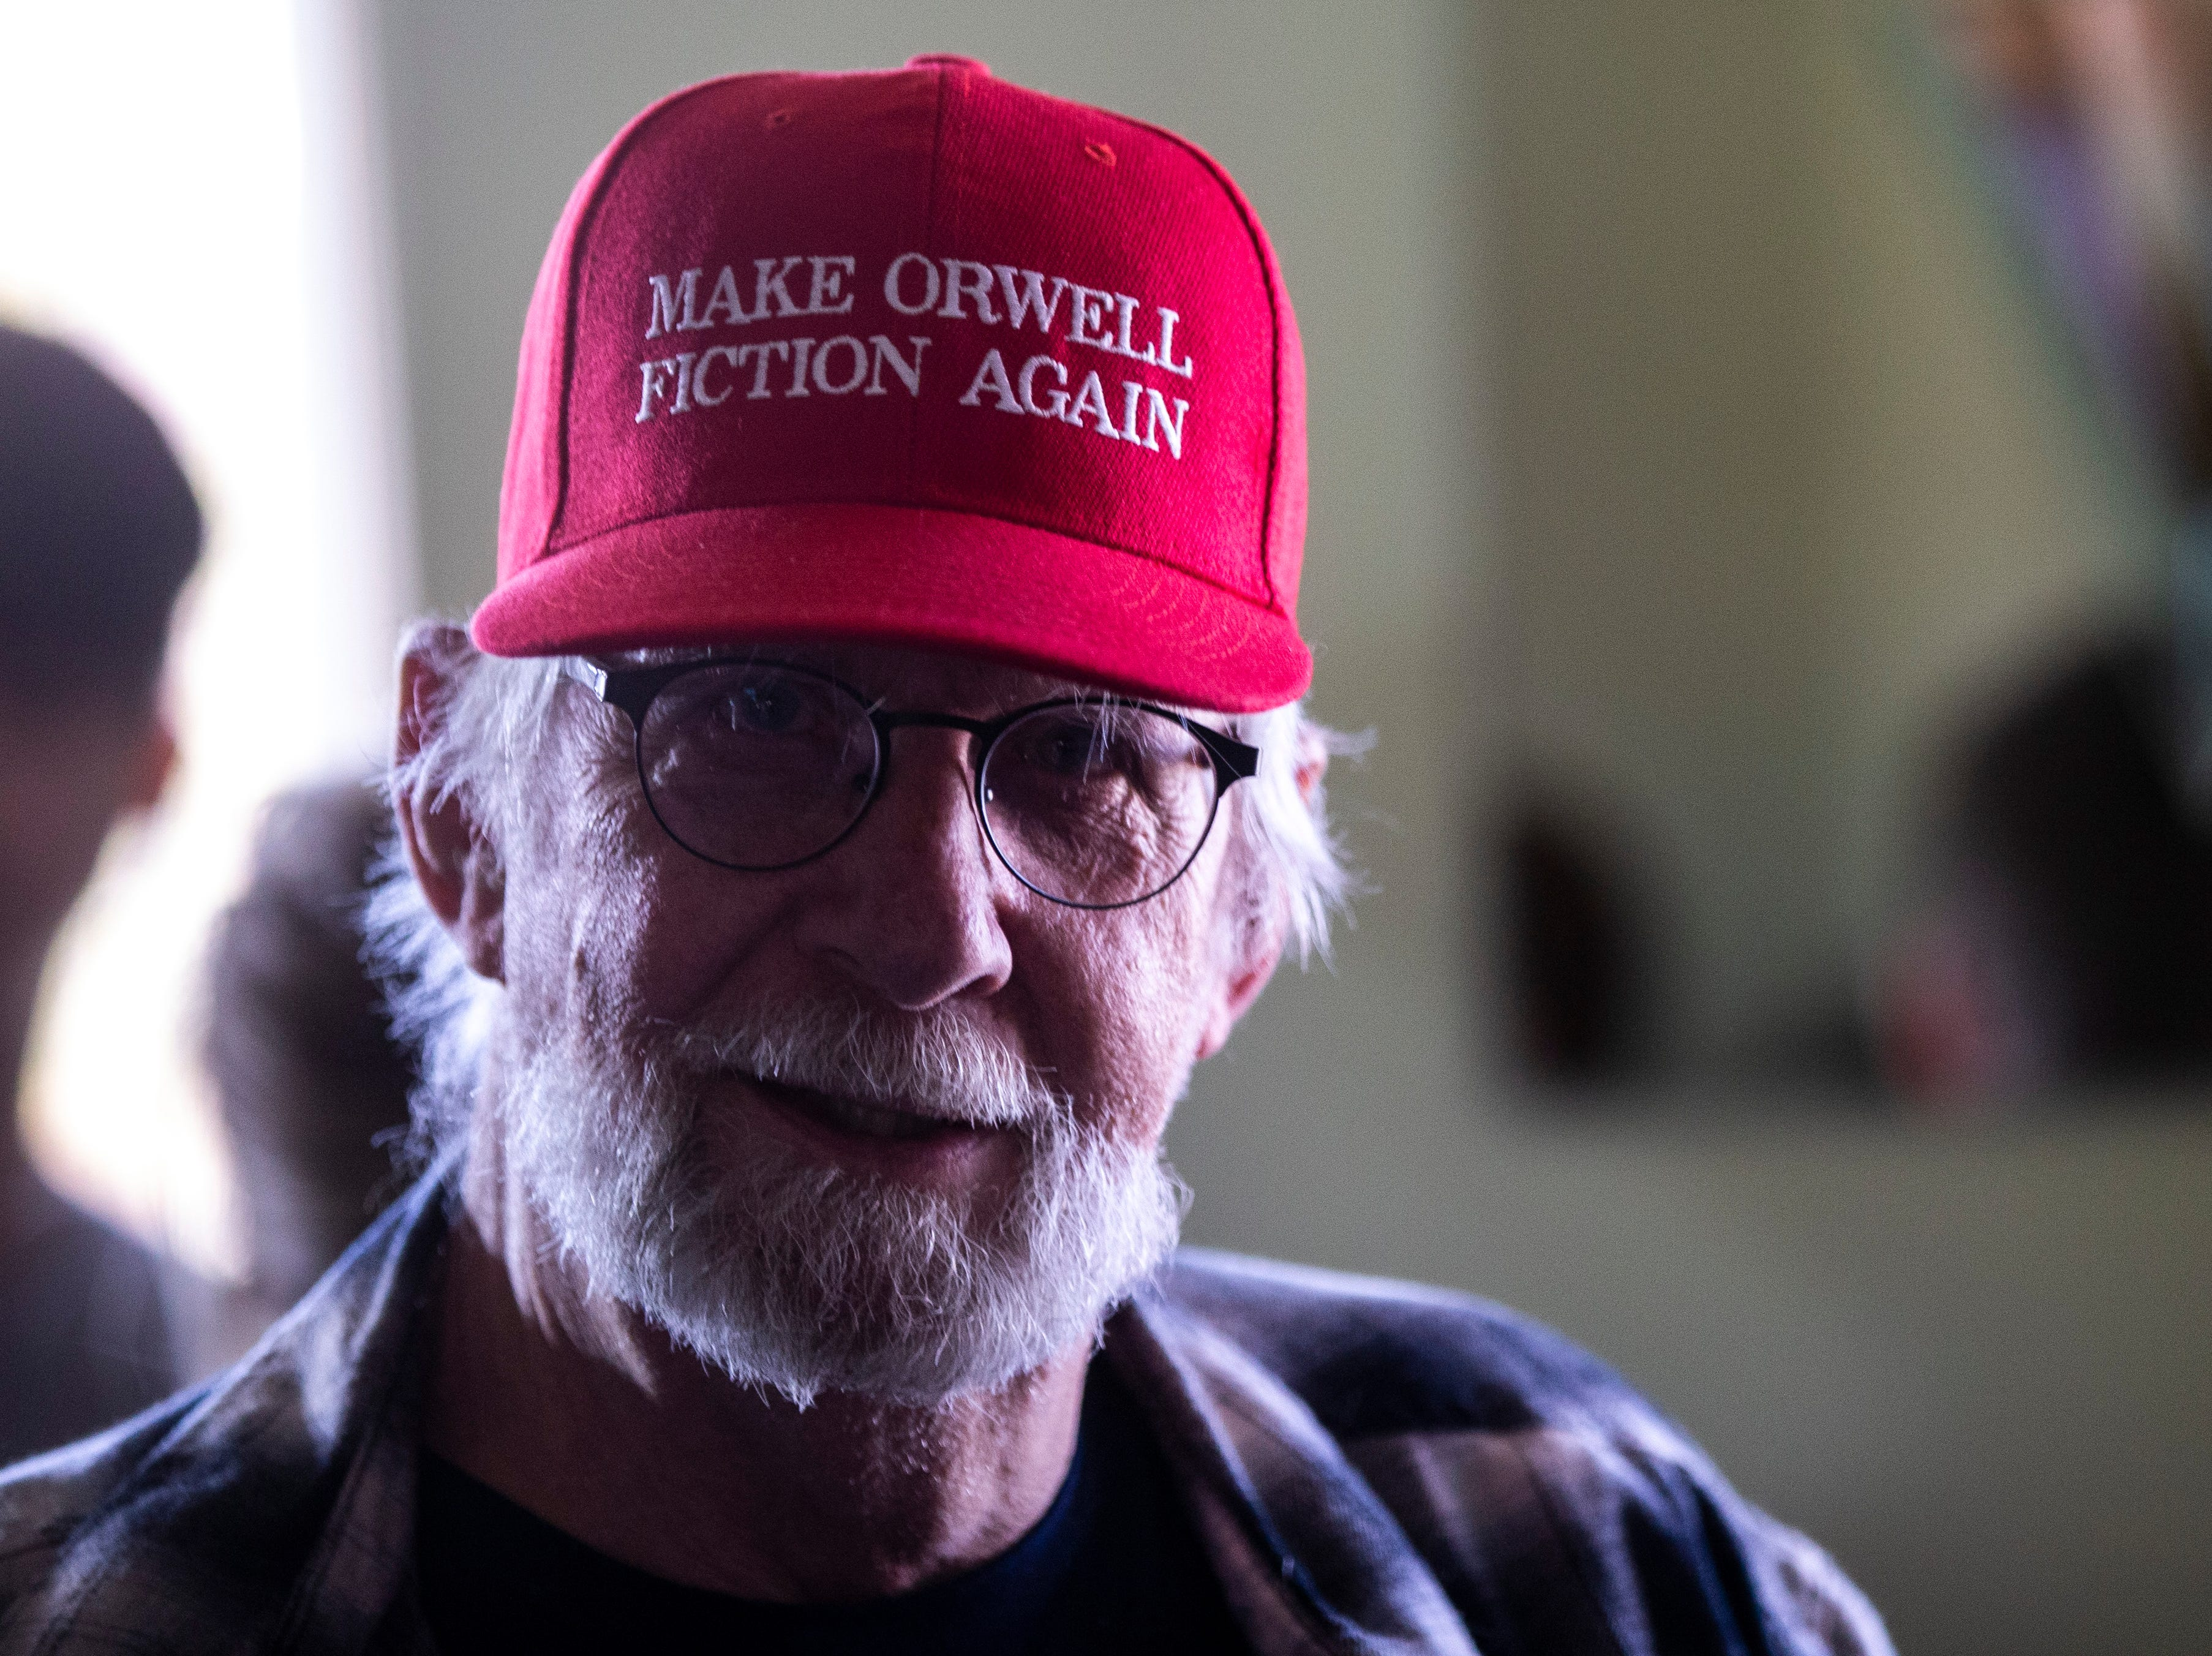 """Pieter Breitner, of Coralville, waits in line while wearing a red hat that reads, """"Make Orwell fiction again,"""" to take a photo with U.S. Sen. Elizabeth Warren, D-Mass., after a campaign event, Friday, April 26, 2019, at the Tipton Family Restaurant in Tipton, Iowa."""